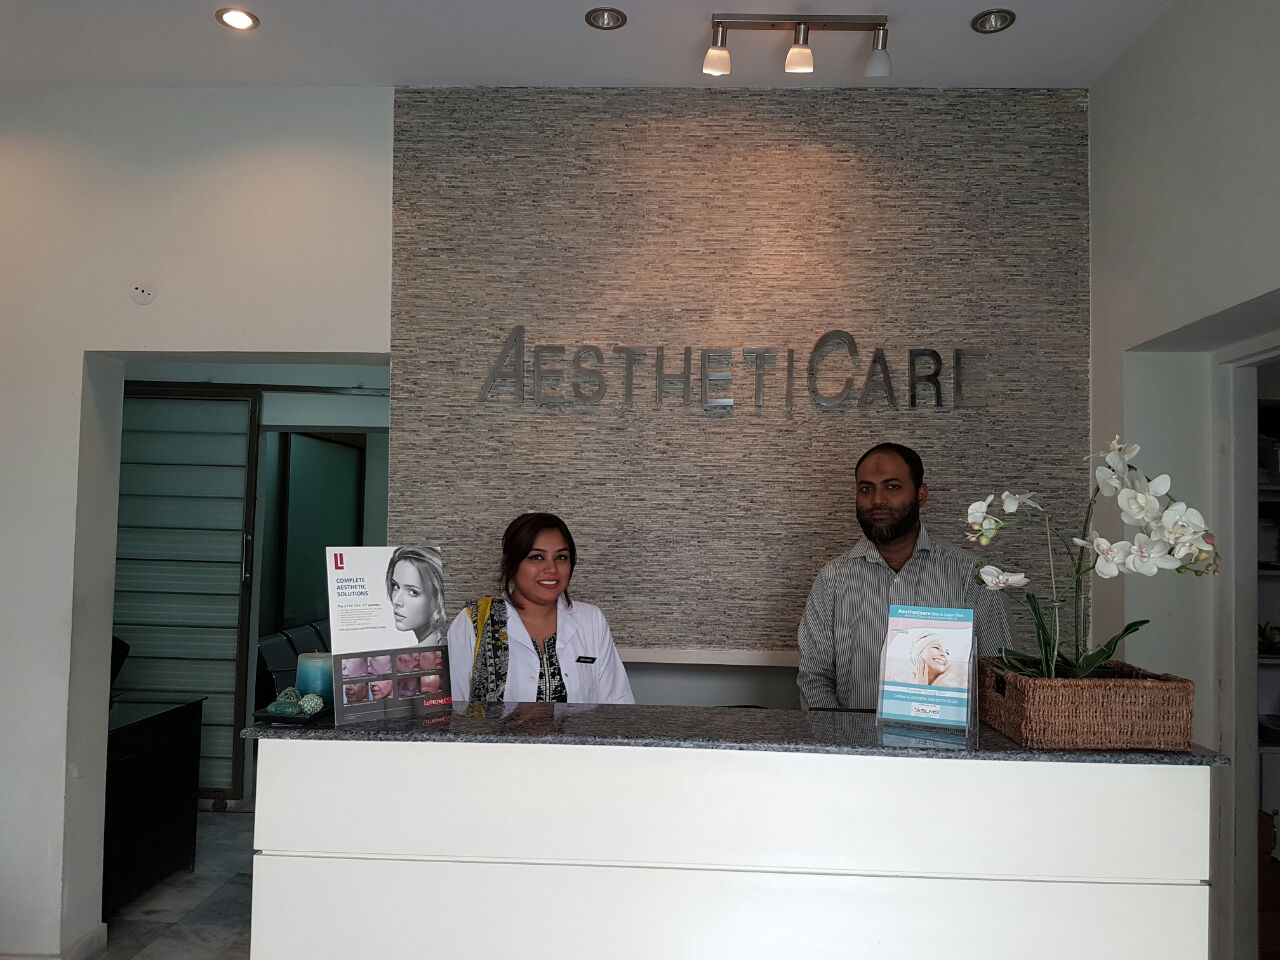 Looking for Best Dermatologist in Pakistan? The best skin & laser clinic in Lahore, Pakistan. You can confidently Call us Now at Aestheticare.